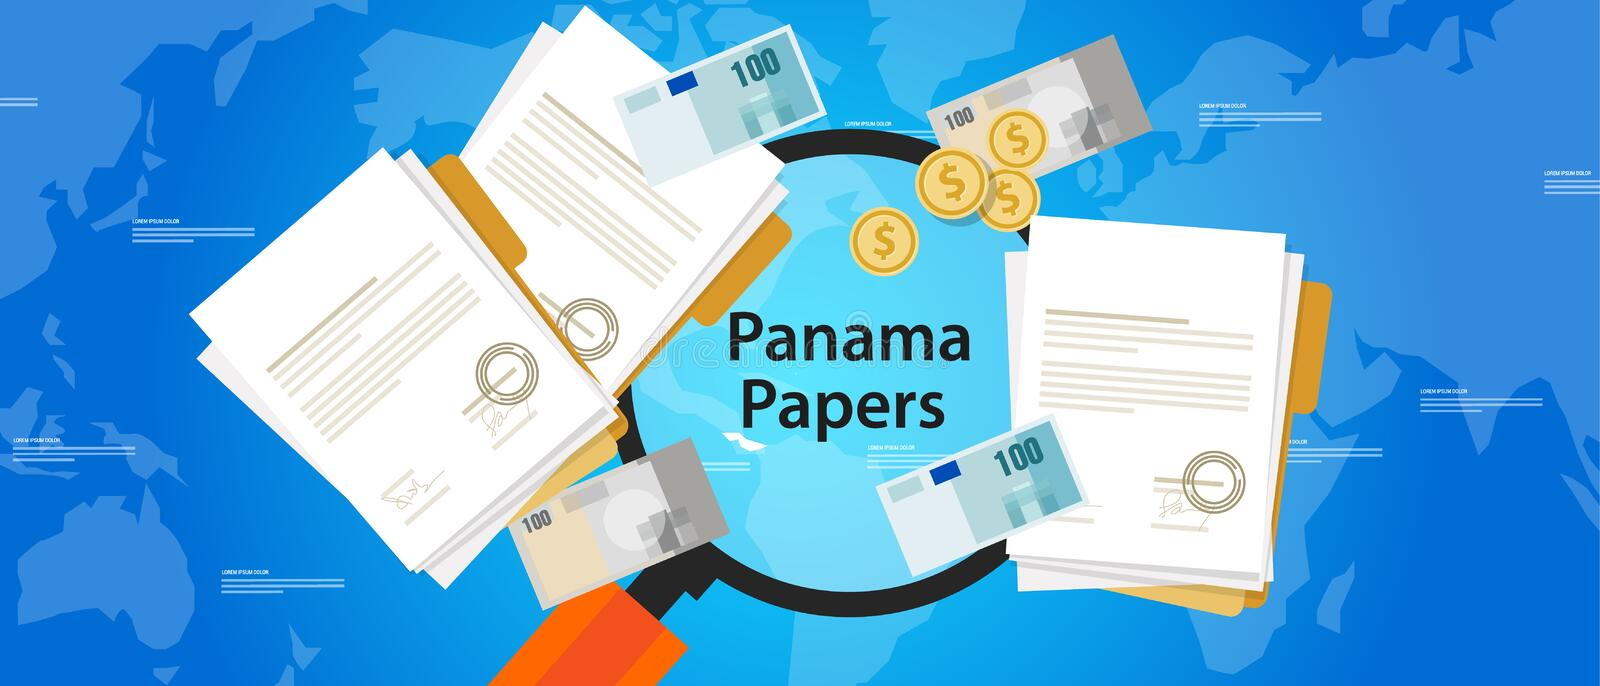 Panama papers leaked document money laundering crime stock illustration